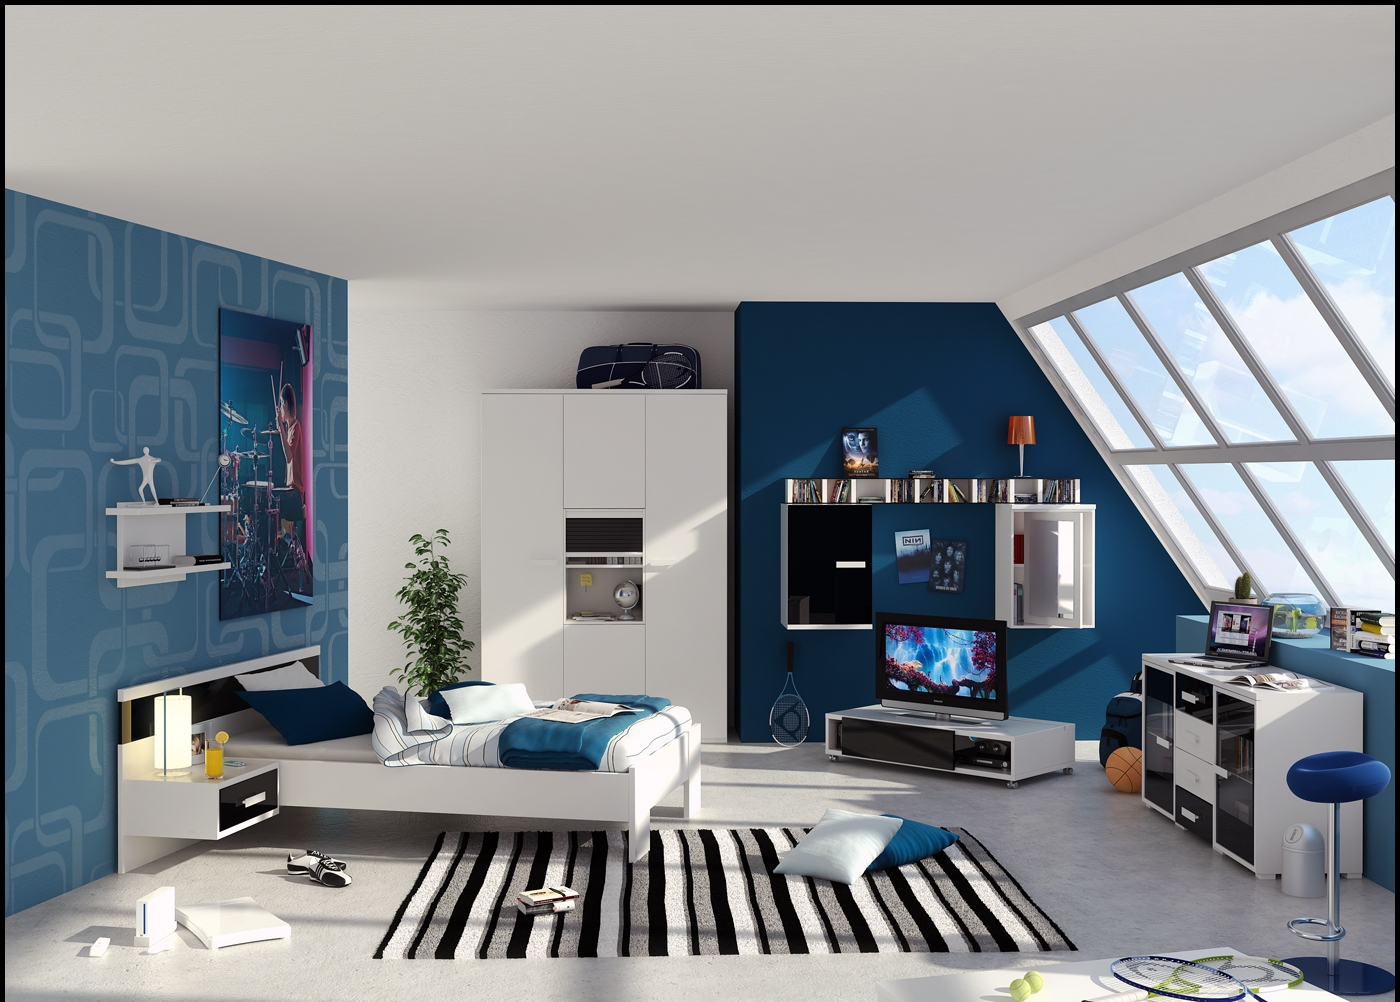 Image Blue And White Interior For Boys Room With Slopping Window